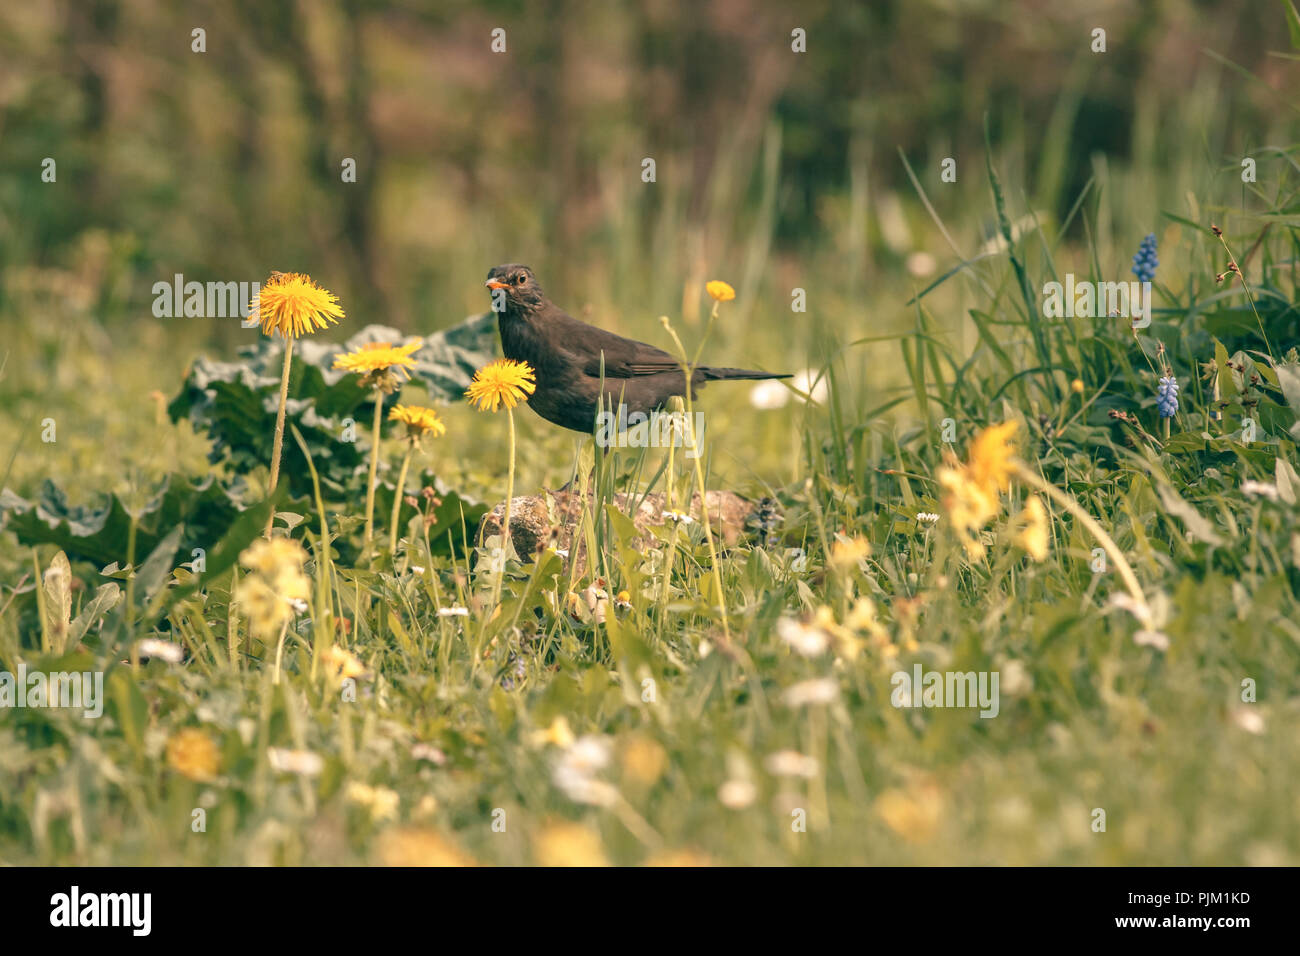 A blackbird sits in the meadow and observes the surroundings, - Stock Image